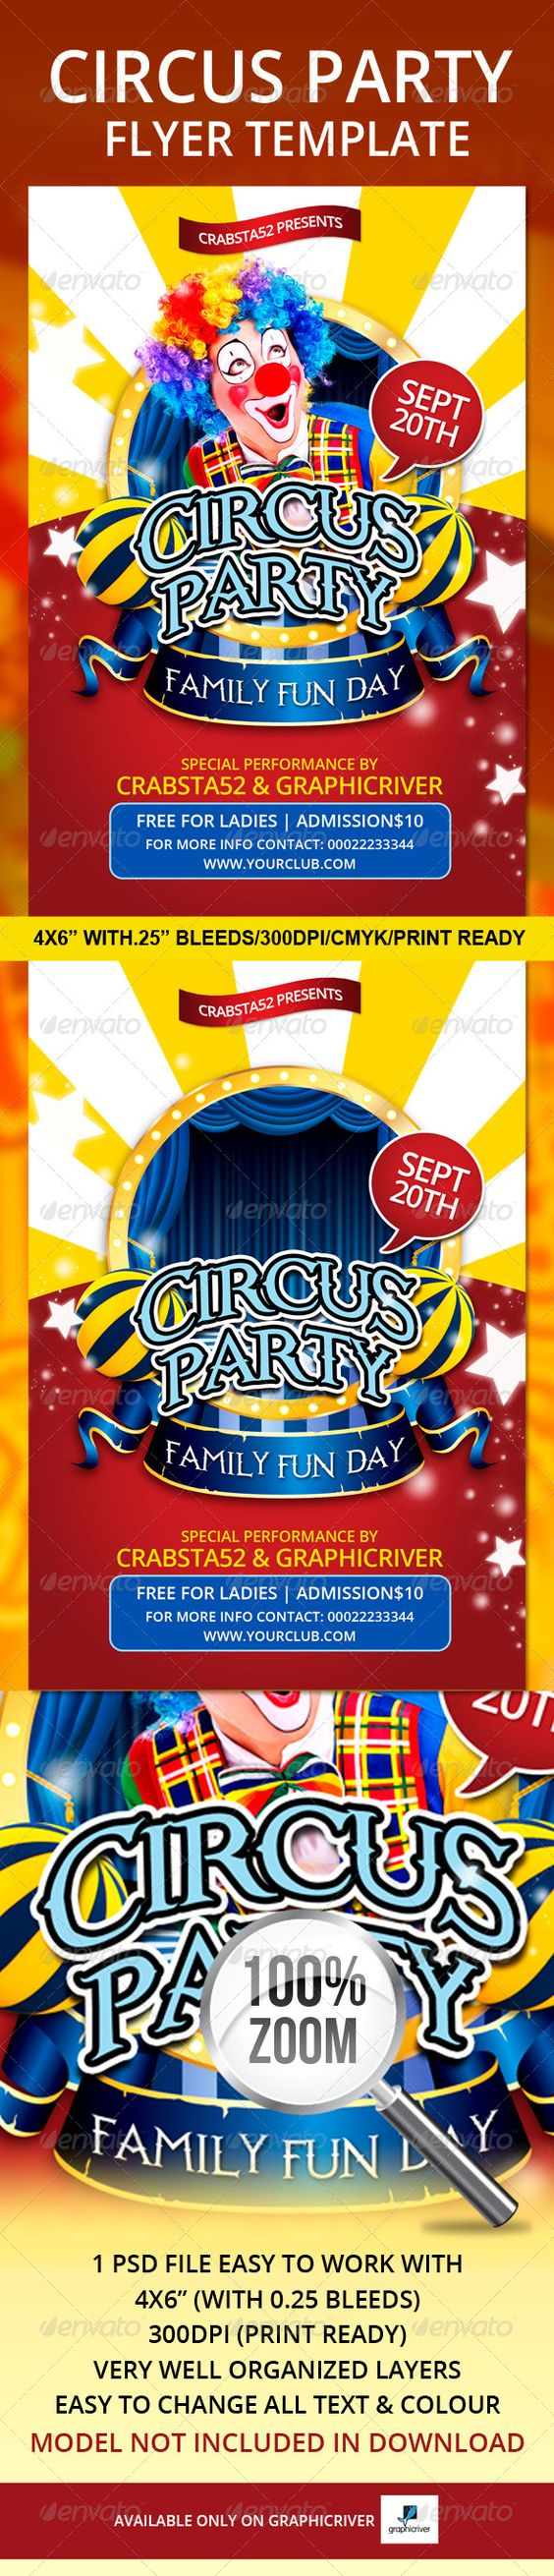 "Circus Party Flyer Template   #GraphicRiver         Circus Party Flyer Template is a very modern psd flyer that will give the perfect promotion for your upcoming event! 1 PSD file 4×6"" size with 0.25"" bleeds Simple and easy to work with CMYK/300dpi and Ready to print Very well organised and layers named appropriately Easy model photo and text replacement Model not included in the final download file, I have setup a layer (in colour Green) where you will insert your model.  Used font…"